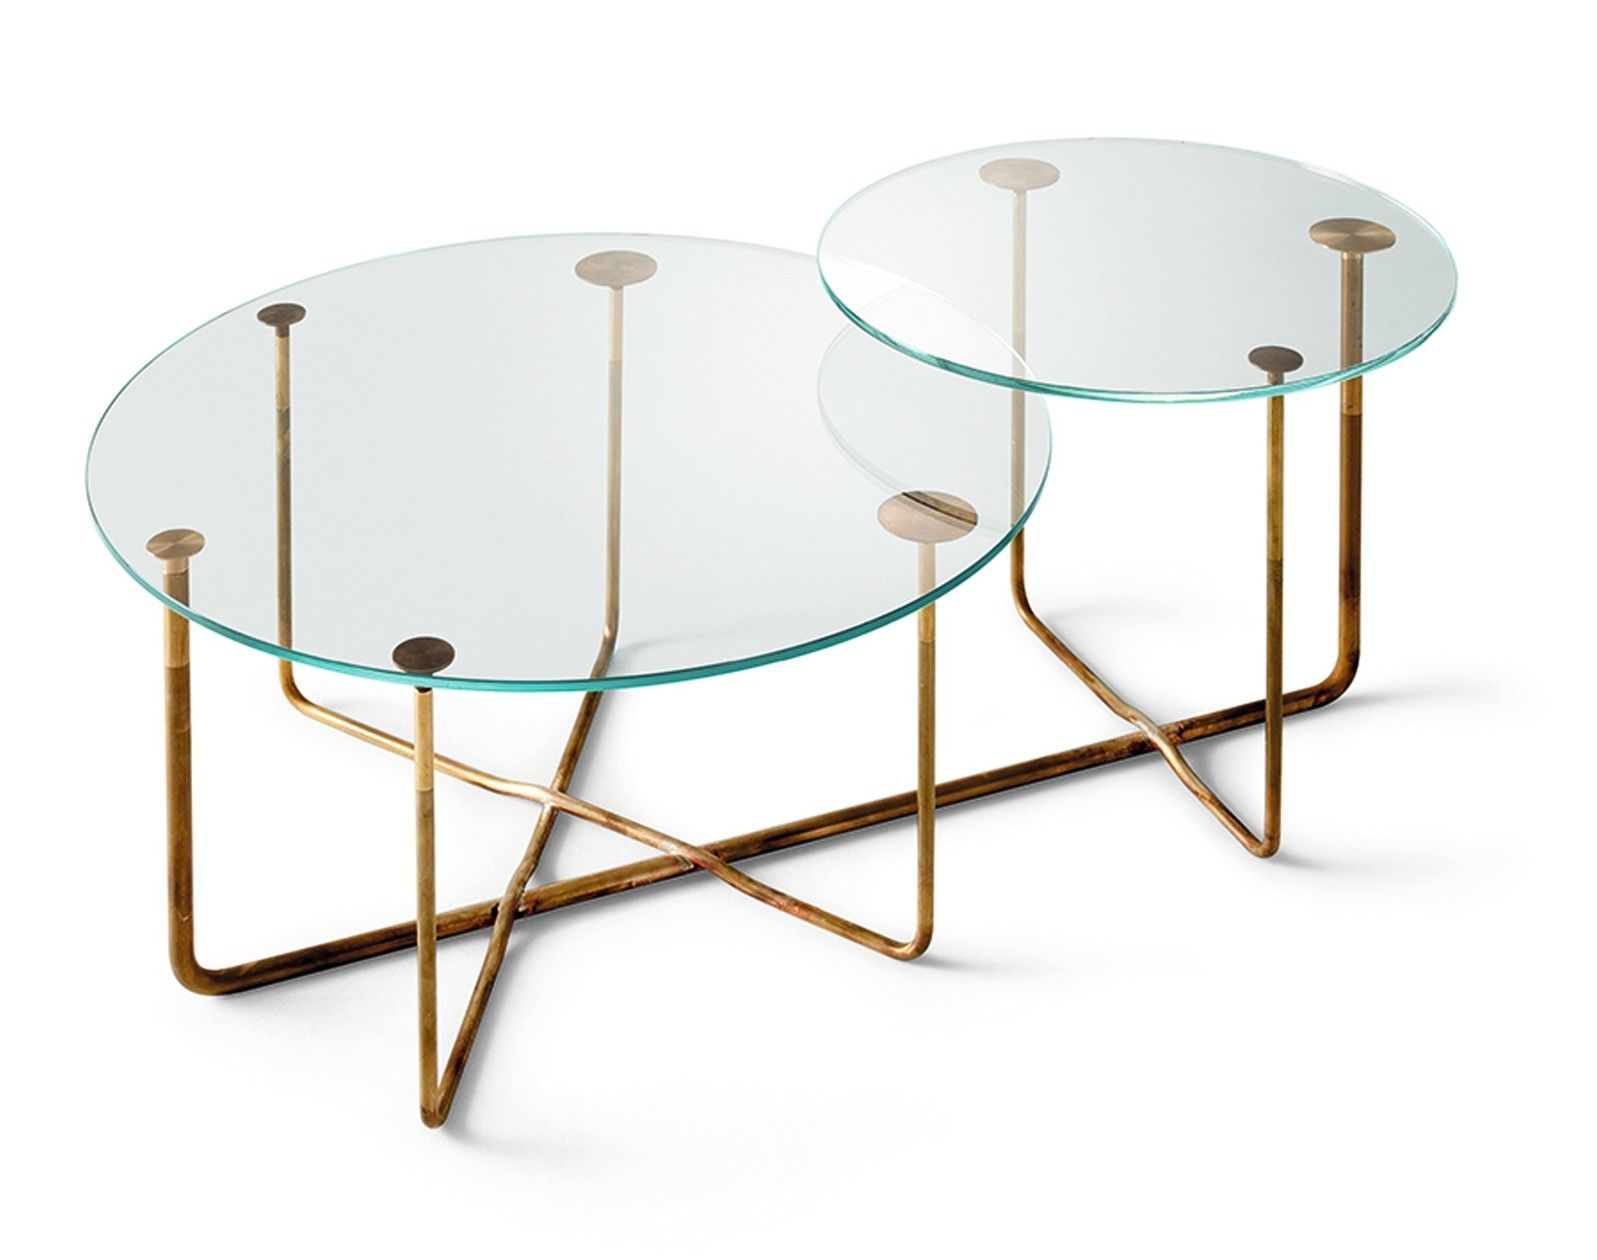 Connection Round Coffee Table By Gallotti Radice Design Massimo Castagna Round Coffee Table Glass Coffee Table Modern Coffee Tables [ 1260 x 1597 Pixel ]